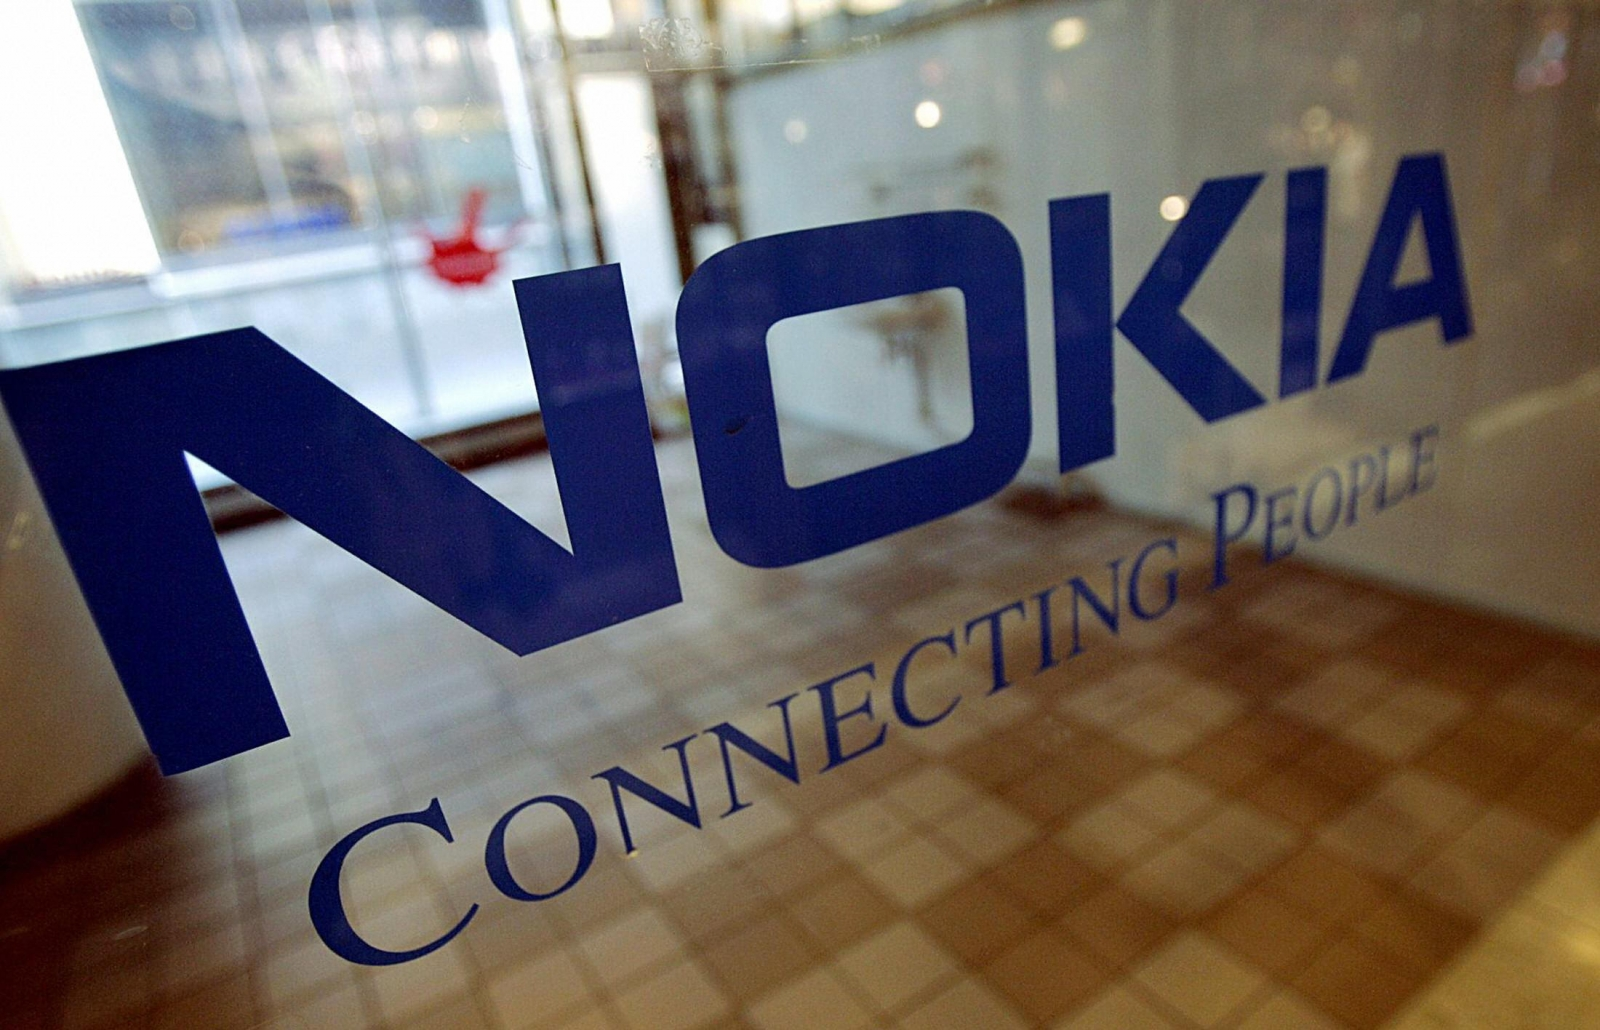 Nokia to buy Comptel corporation